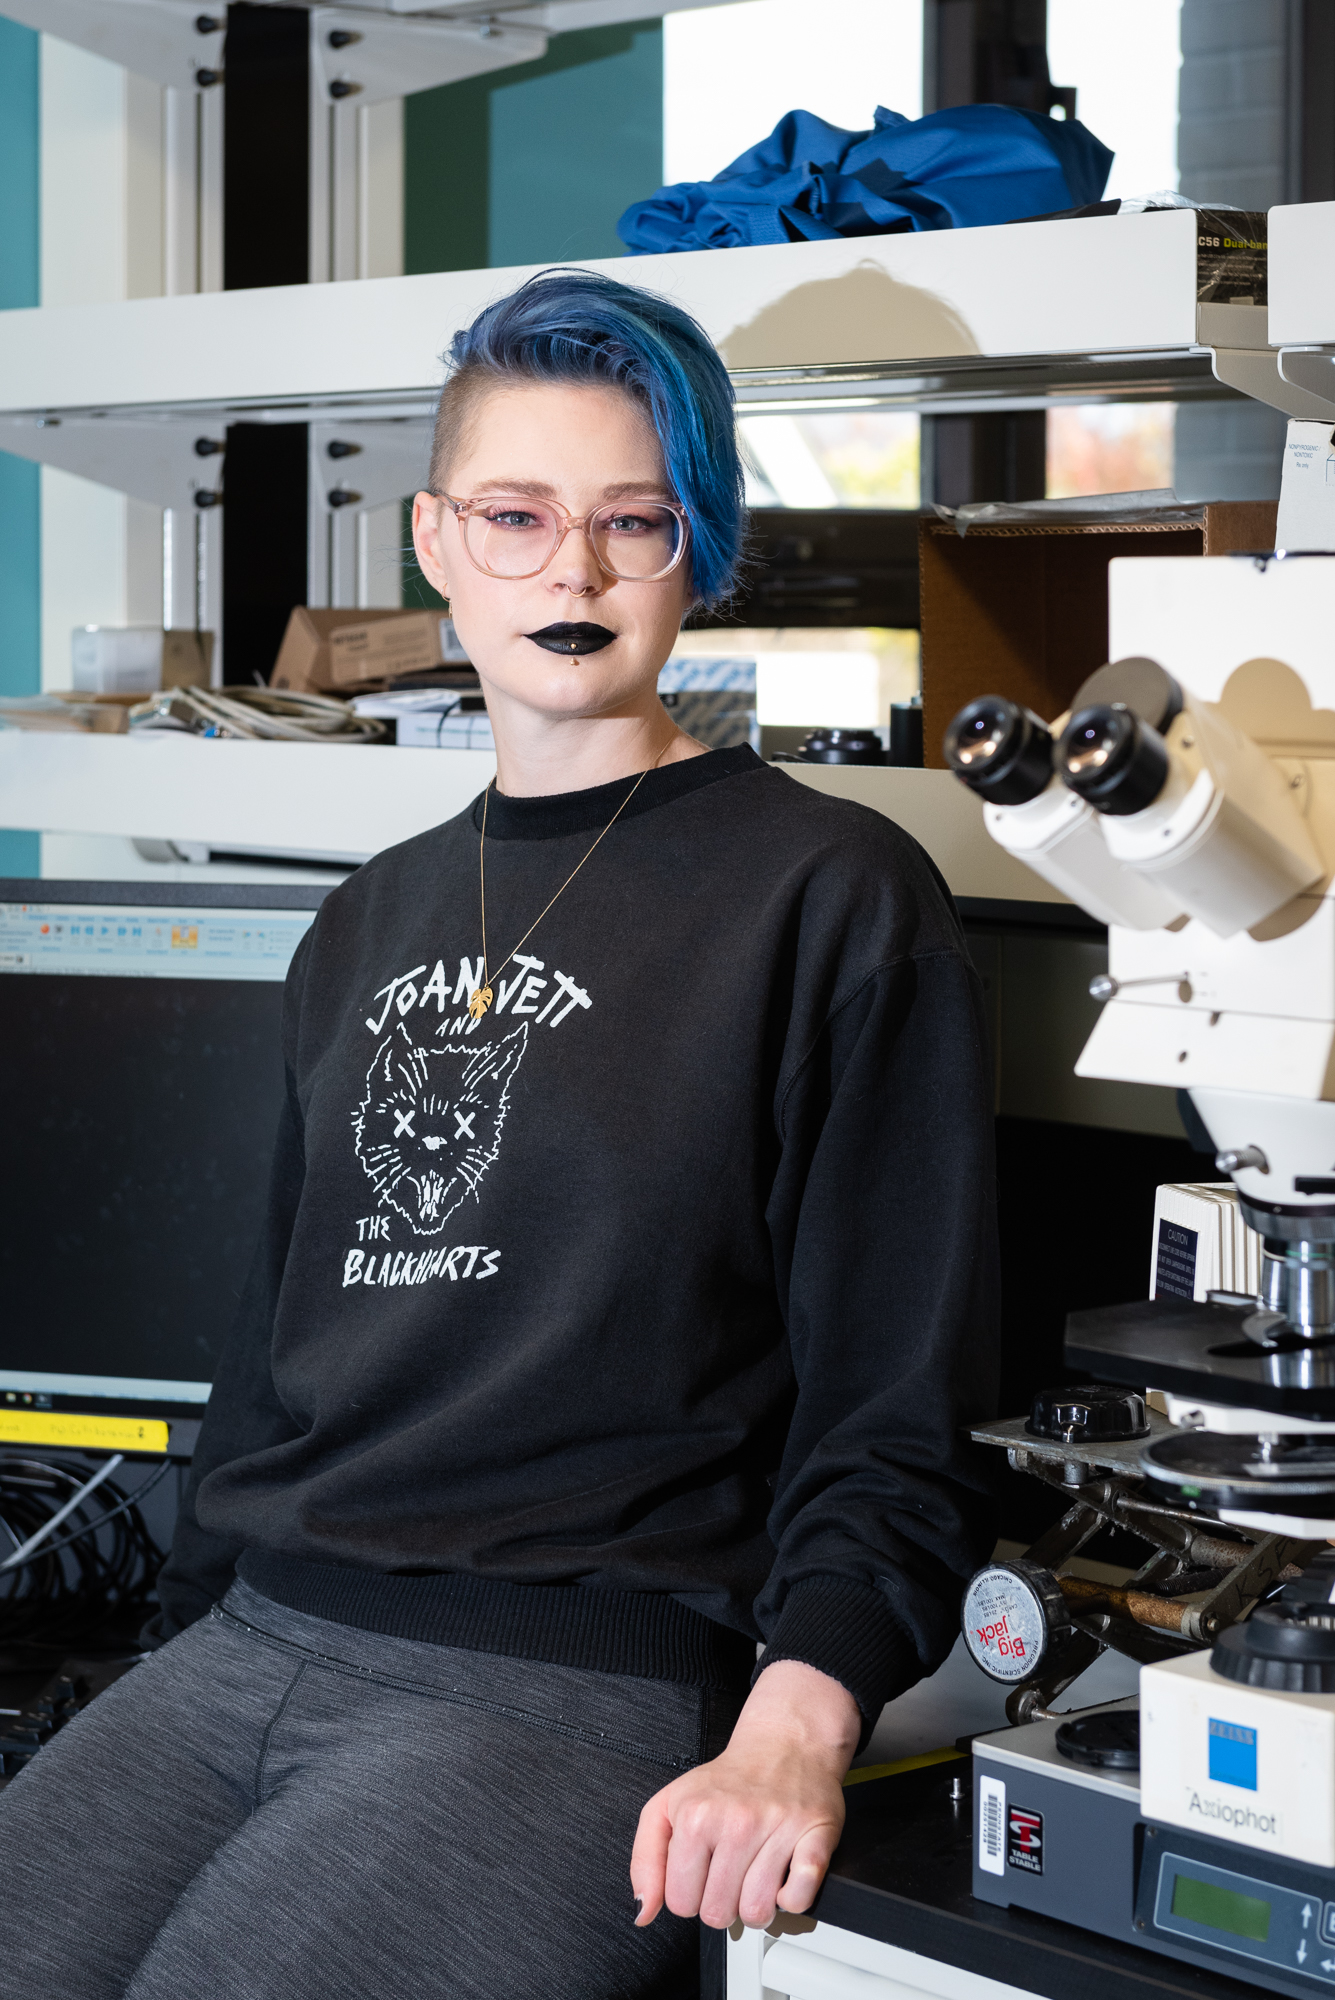 Remmi Baker, PHD Candidate at Penn State University's Material Science department, in her lab.